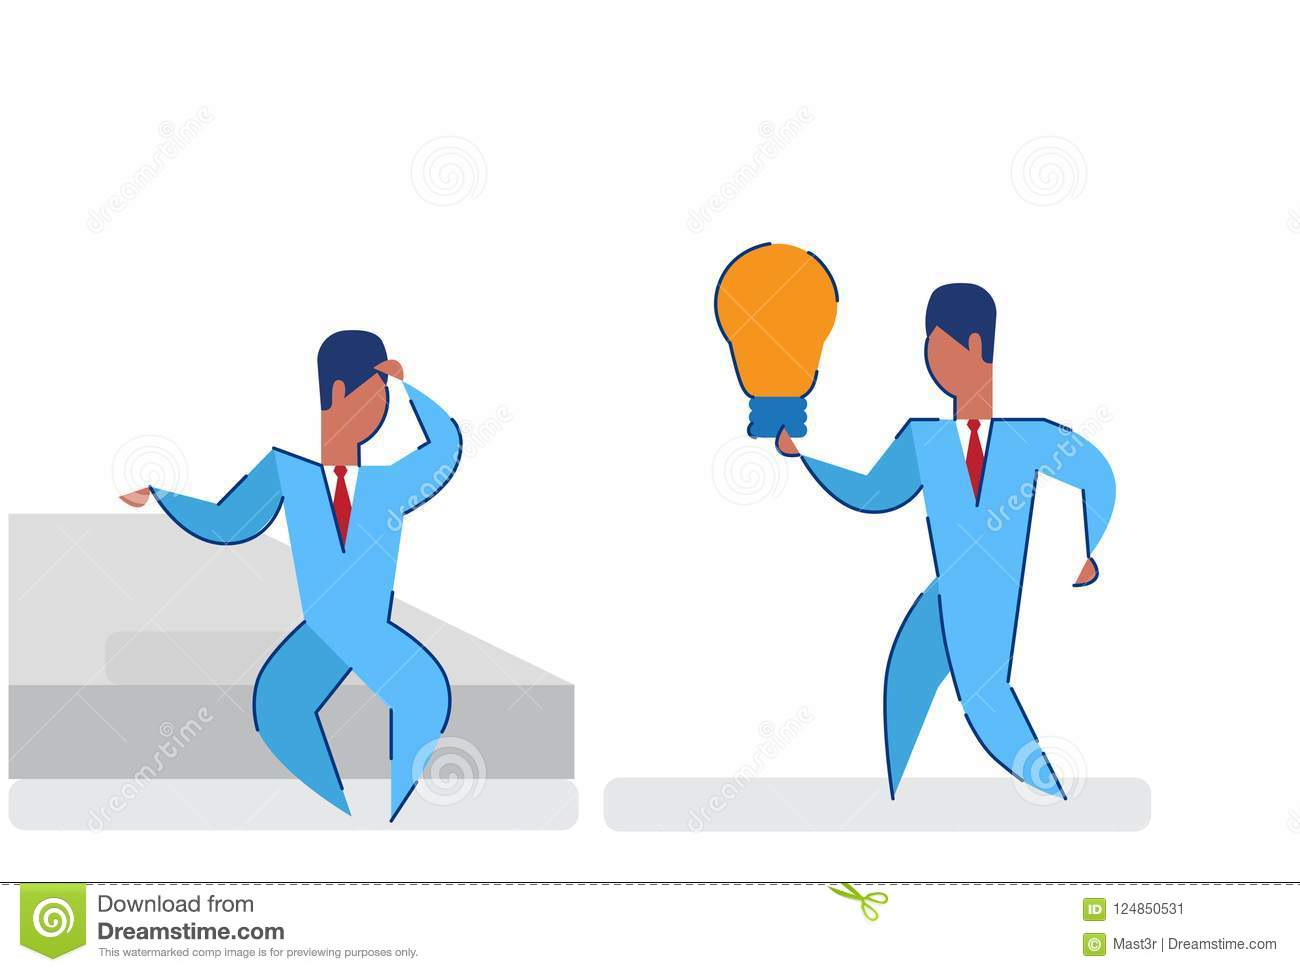 Businessmen brainstorming holding light lamp innovation concept two business men boss employee creative project startup